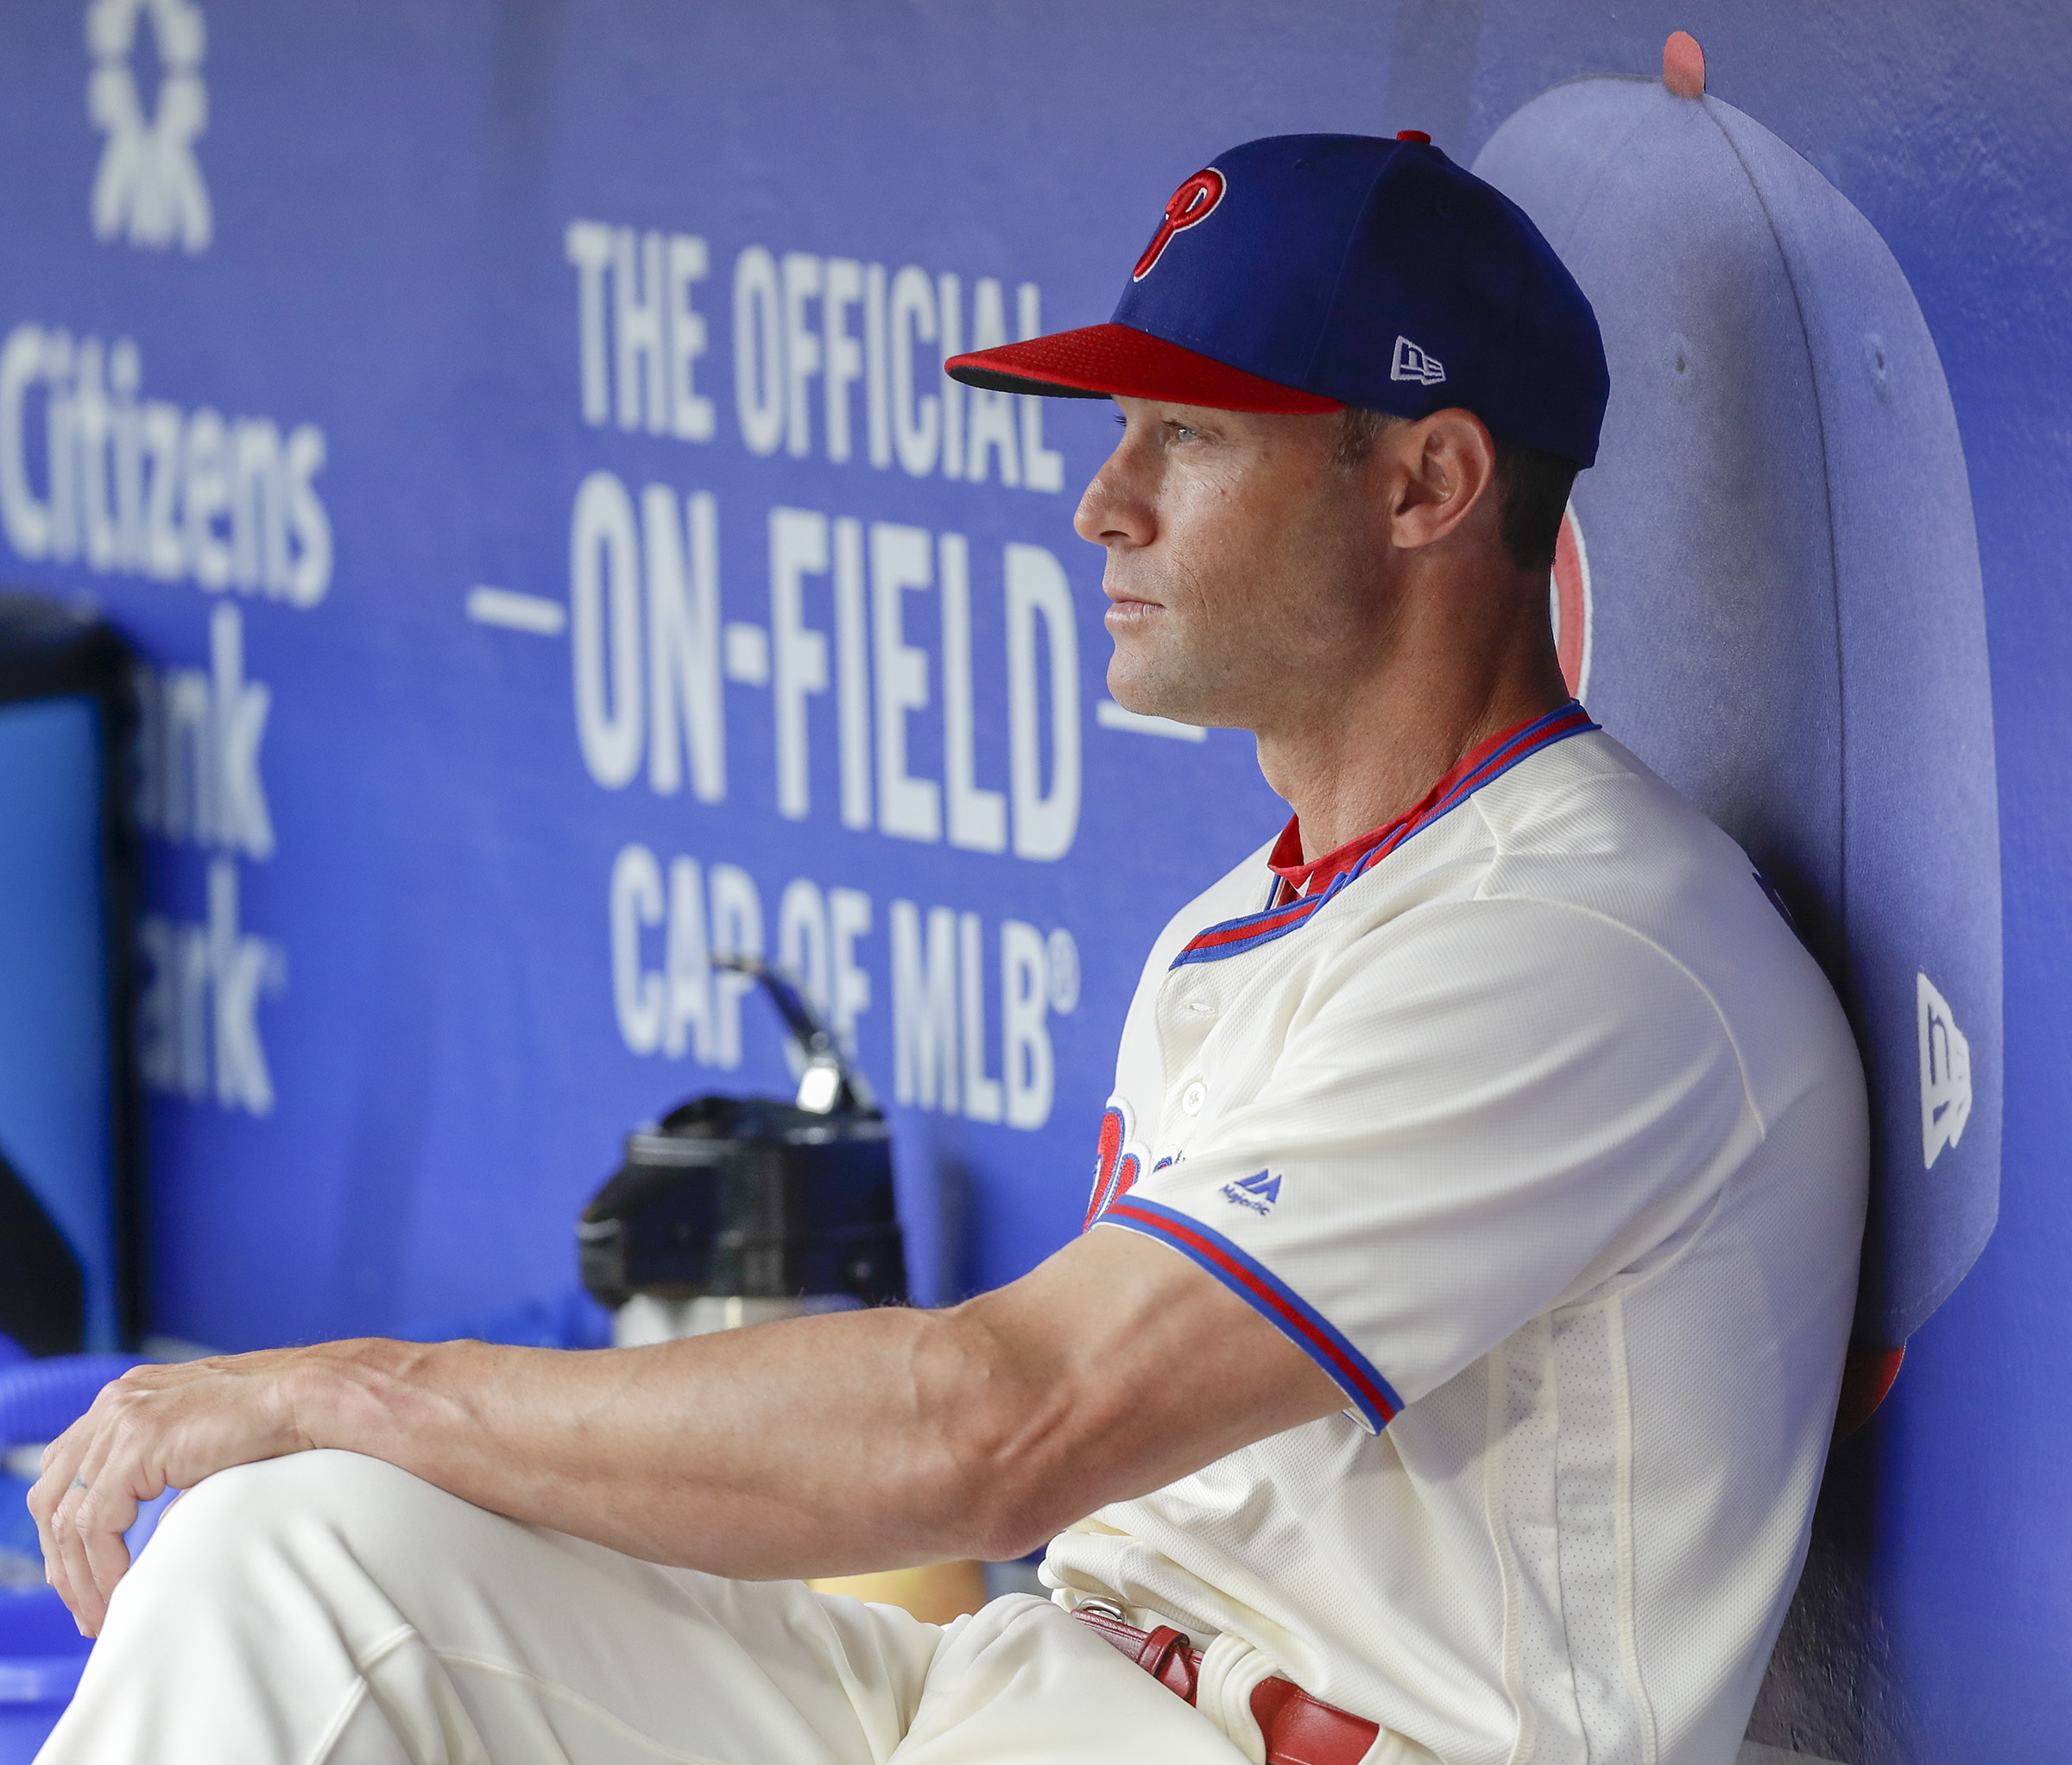 First-year manager Gabe Kapler has adapted after a rough beginning to the season and emerged as a contender for National League Manager of the Year.